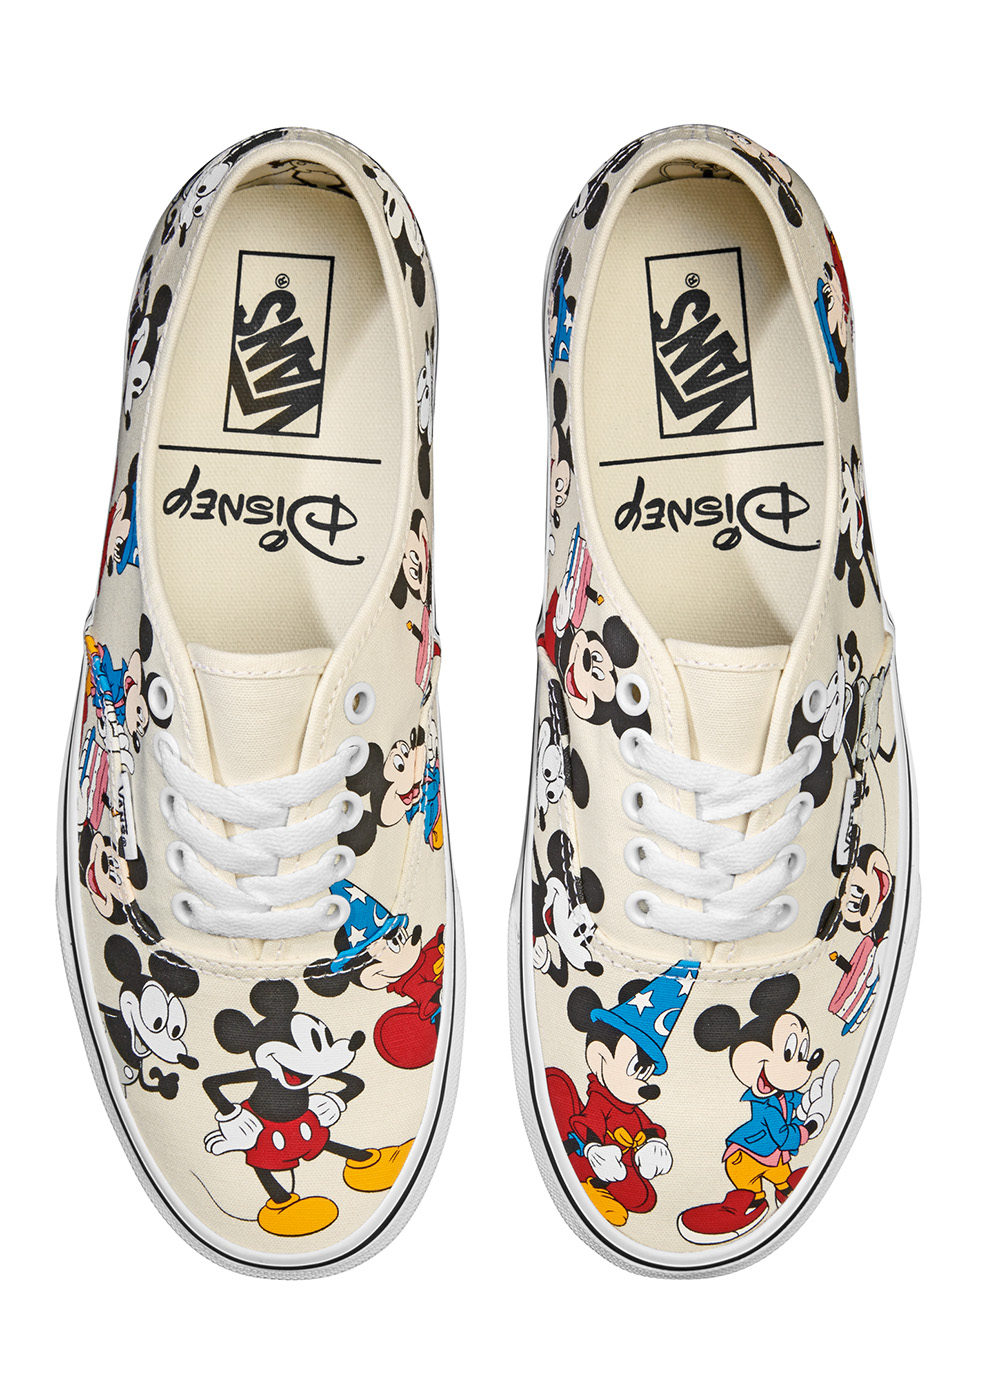 9df333dc29e The special edition Vans and Disney assortment will be available to shop in Vans  retail stores and online at ...